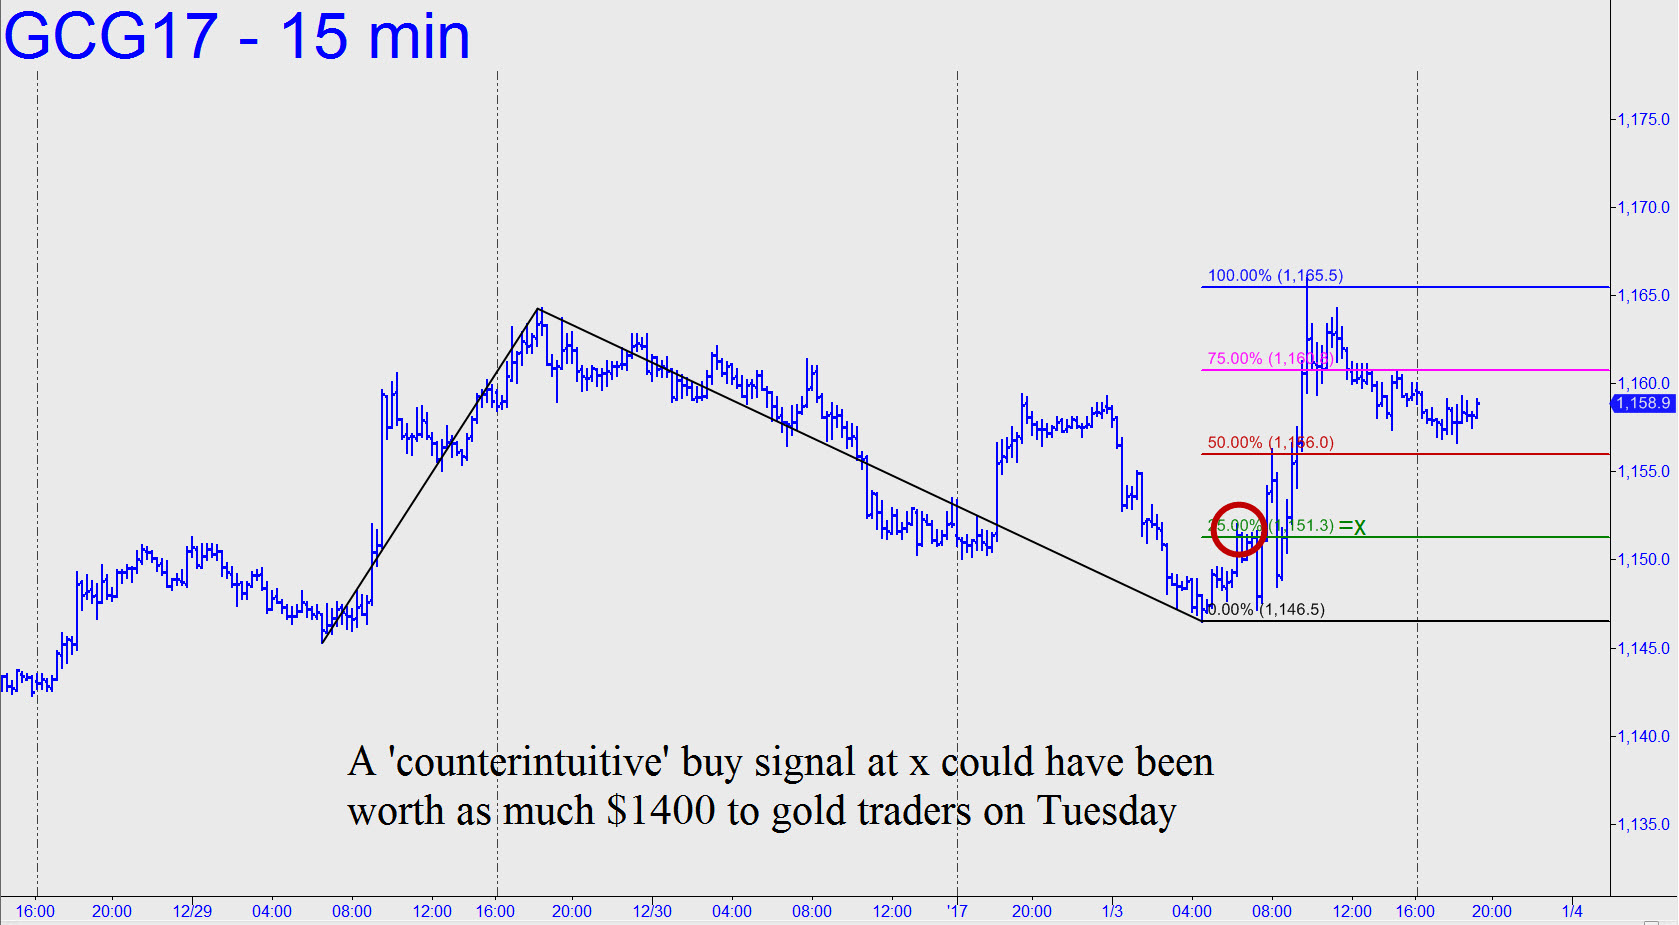 http://www.rickackerman.com/wp-content/uploads/2017/01/Counterintuitive-buy-signal-in-gold.jpg